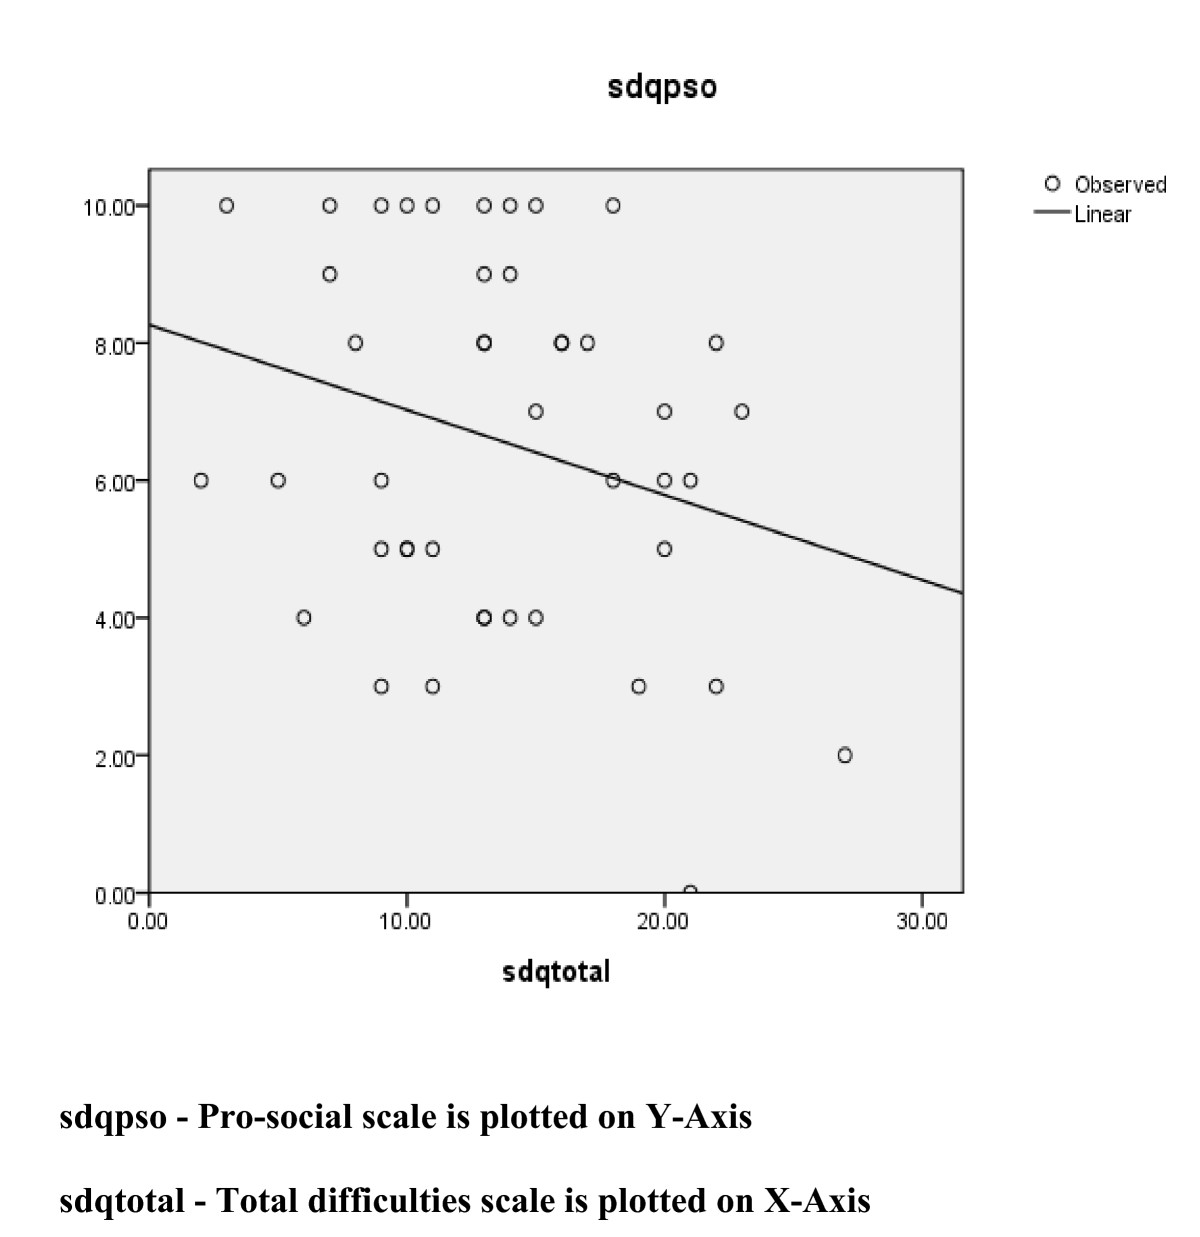 https://static-content.springer.com/image/art%3A10.1186%2F1824-7288-36-37/MediaObjects/13052_2009_Article_85_Fig1_HTML.jpg